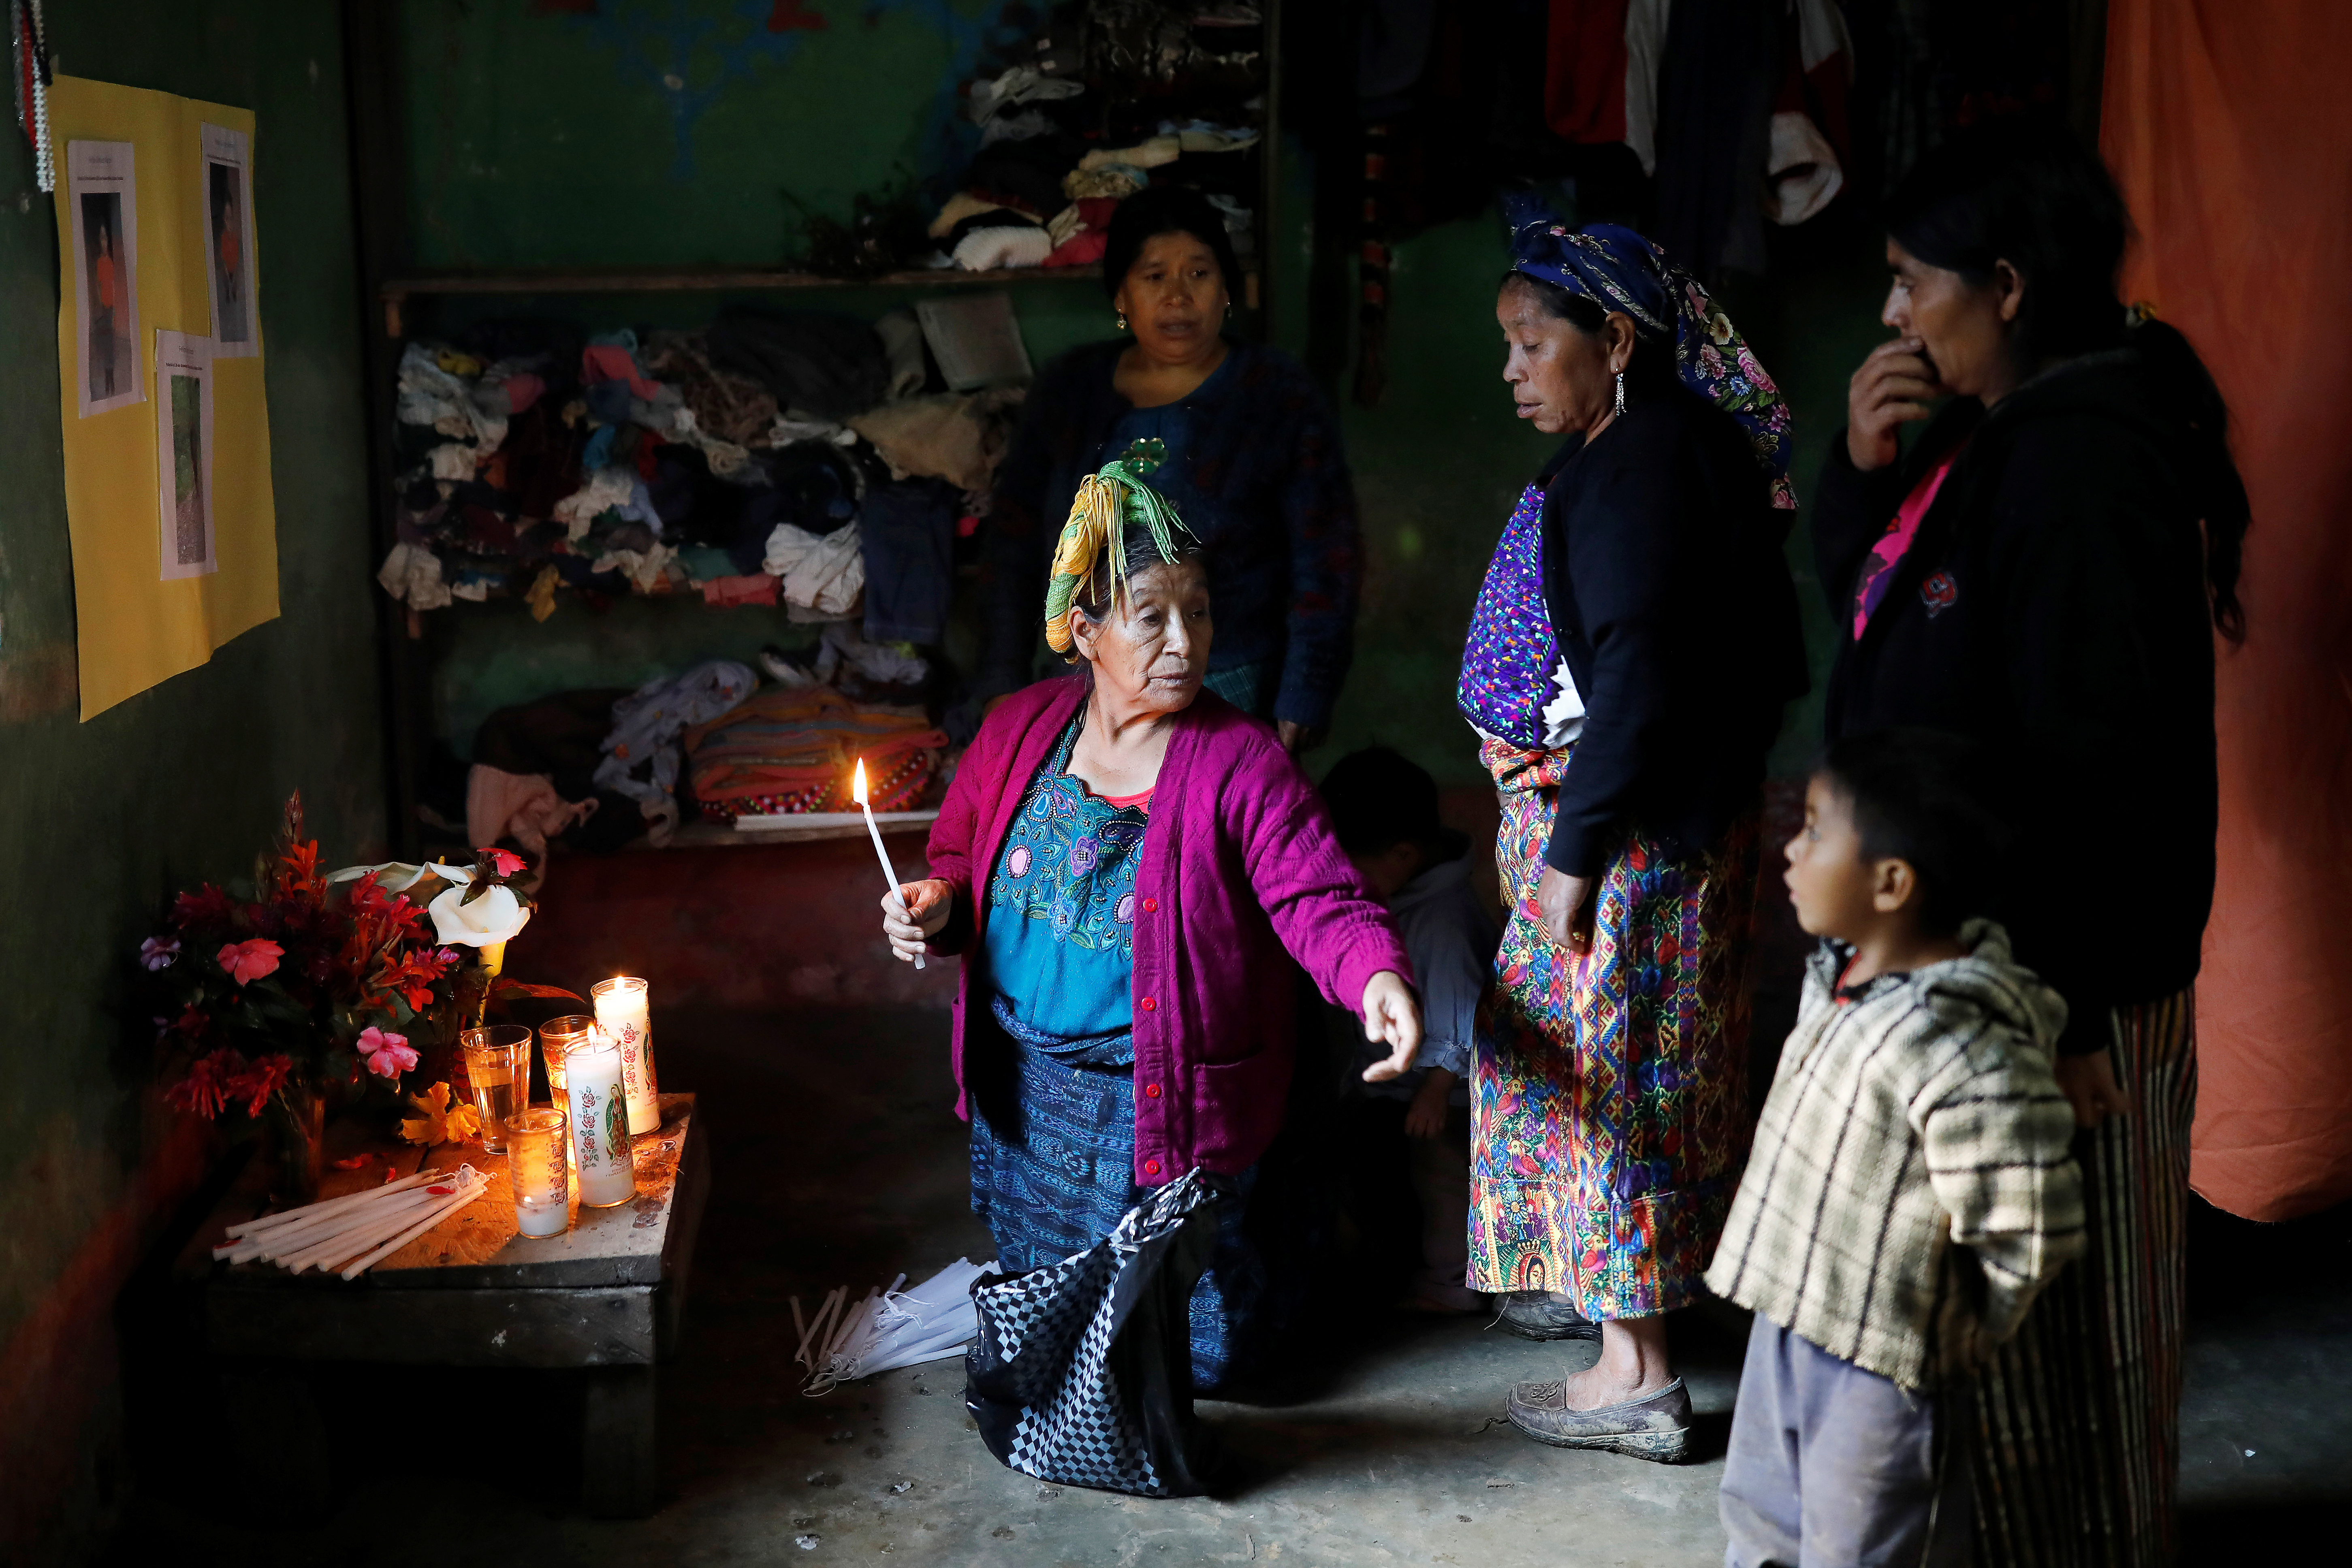 Catarina Perez (C), grandmother of Felipe Gomez Alonzo, a 8-year-old boy detained alongside his father for illegally entering the U.S., who fell ill and died in the custody of U.S. Customs and Border Protection (CBP), gestures at an altar in memory of Felipe at the family's home in the village of Yalambojoch, Guatemala December 27, 2018. REUTERS/Luis Echeverria